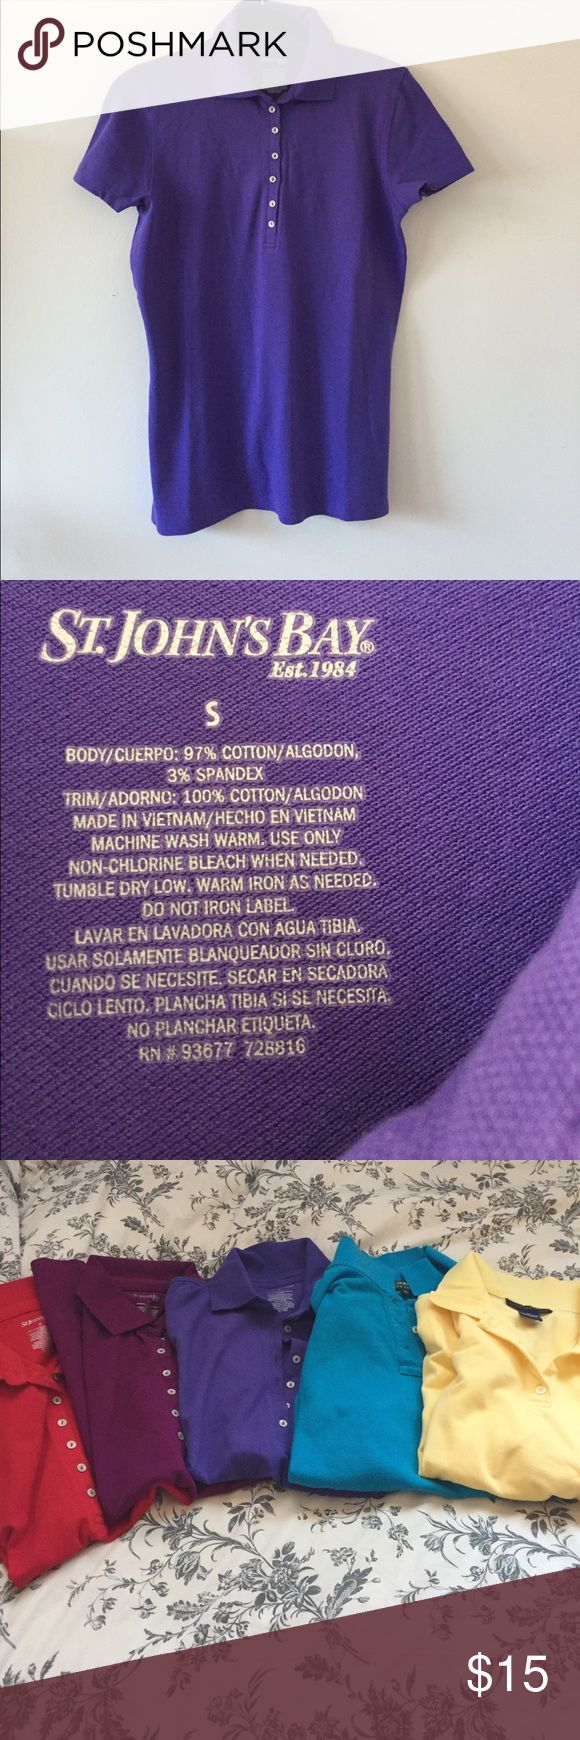 St. John's Bay Purple Polo Shirt St. John's Bay purple polo shirt. Size small. I also have polo shirts available in a few other colors listed in my closet. Bundle for a discount. St. John's Bay Tops